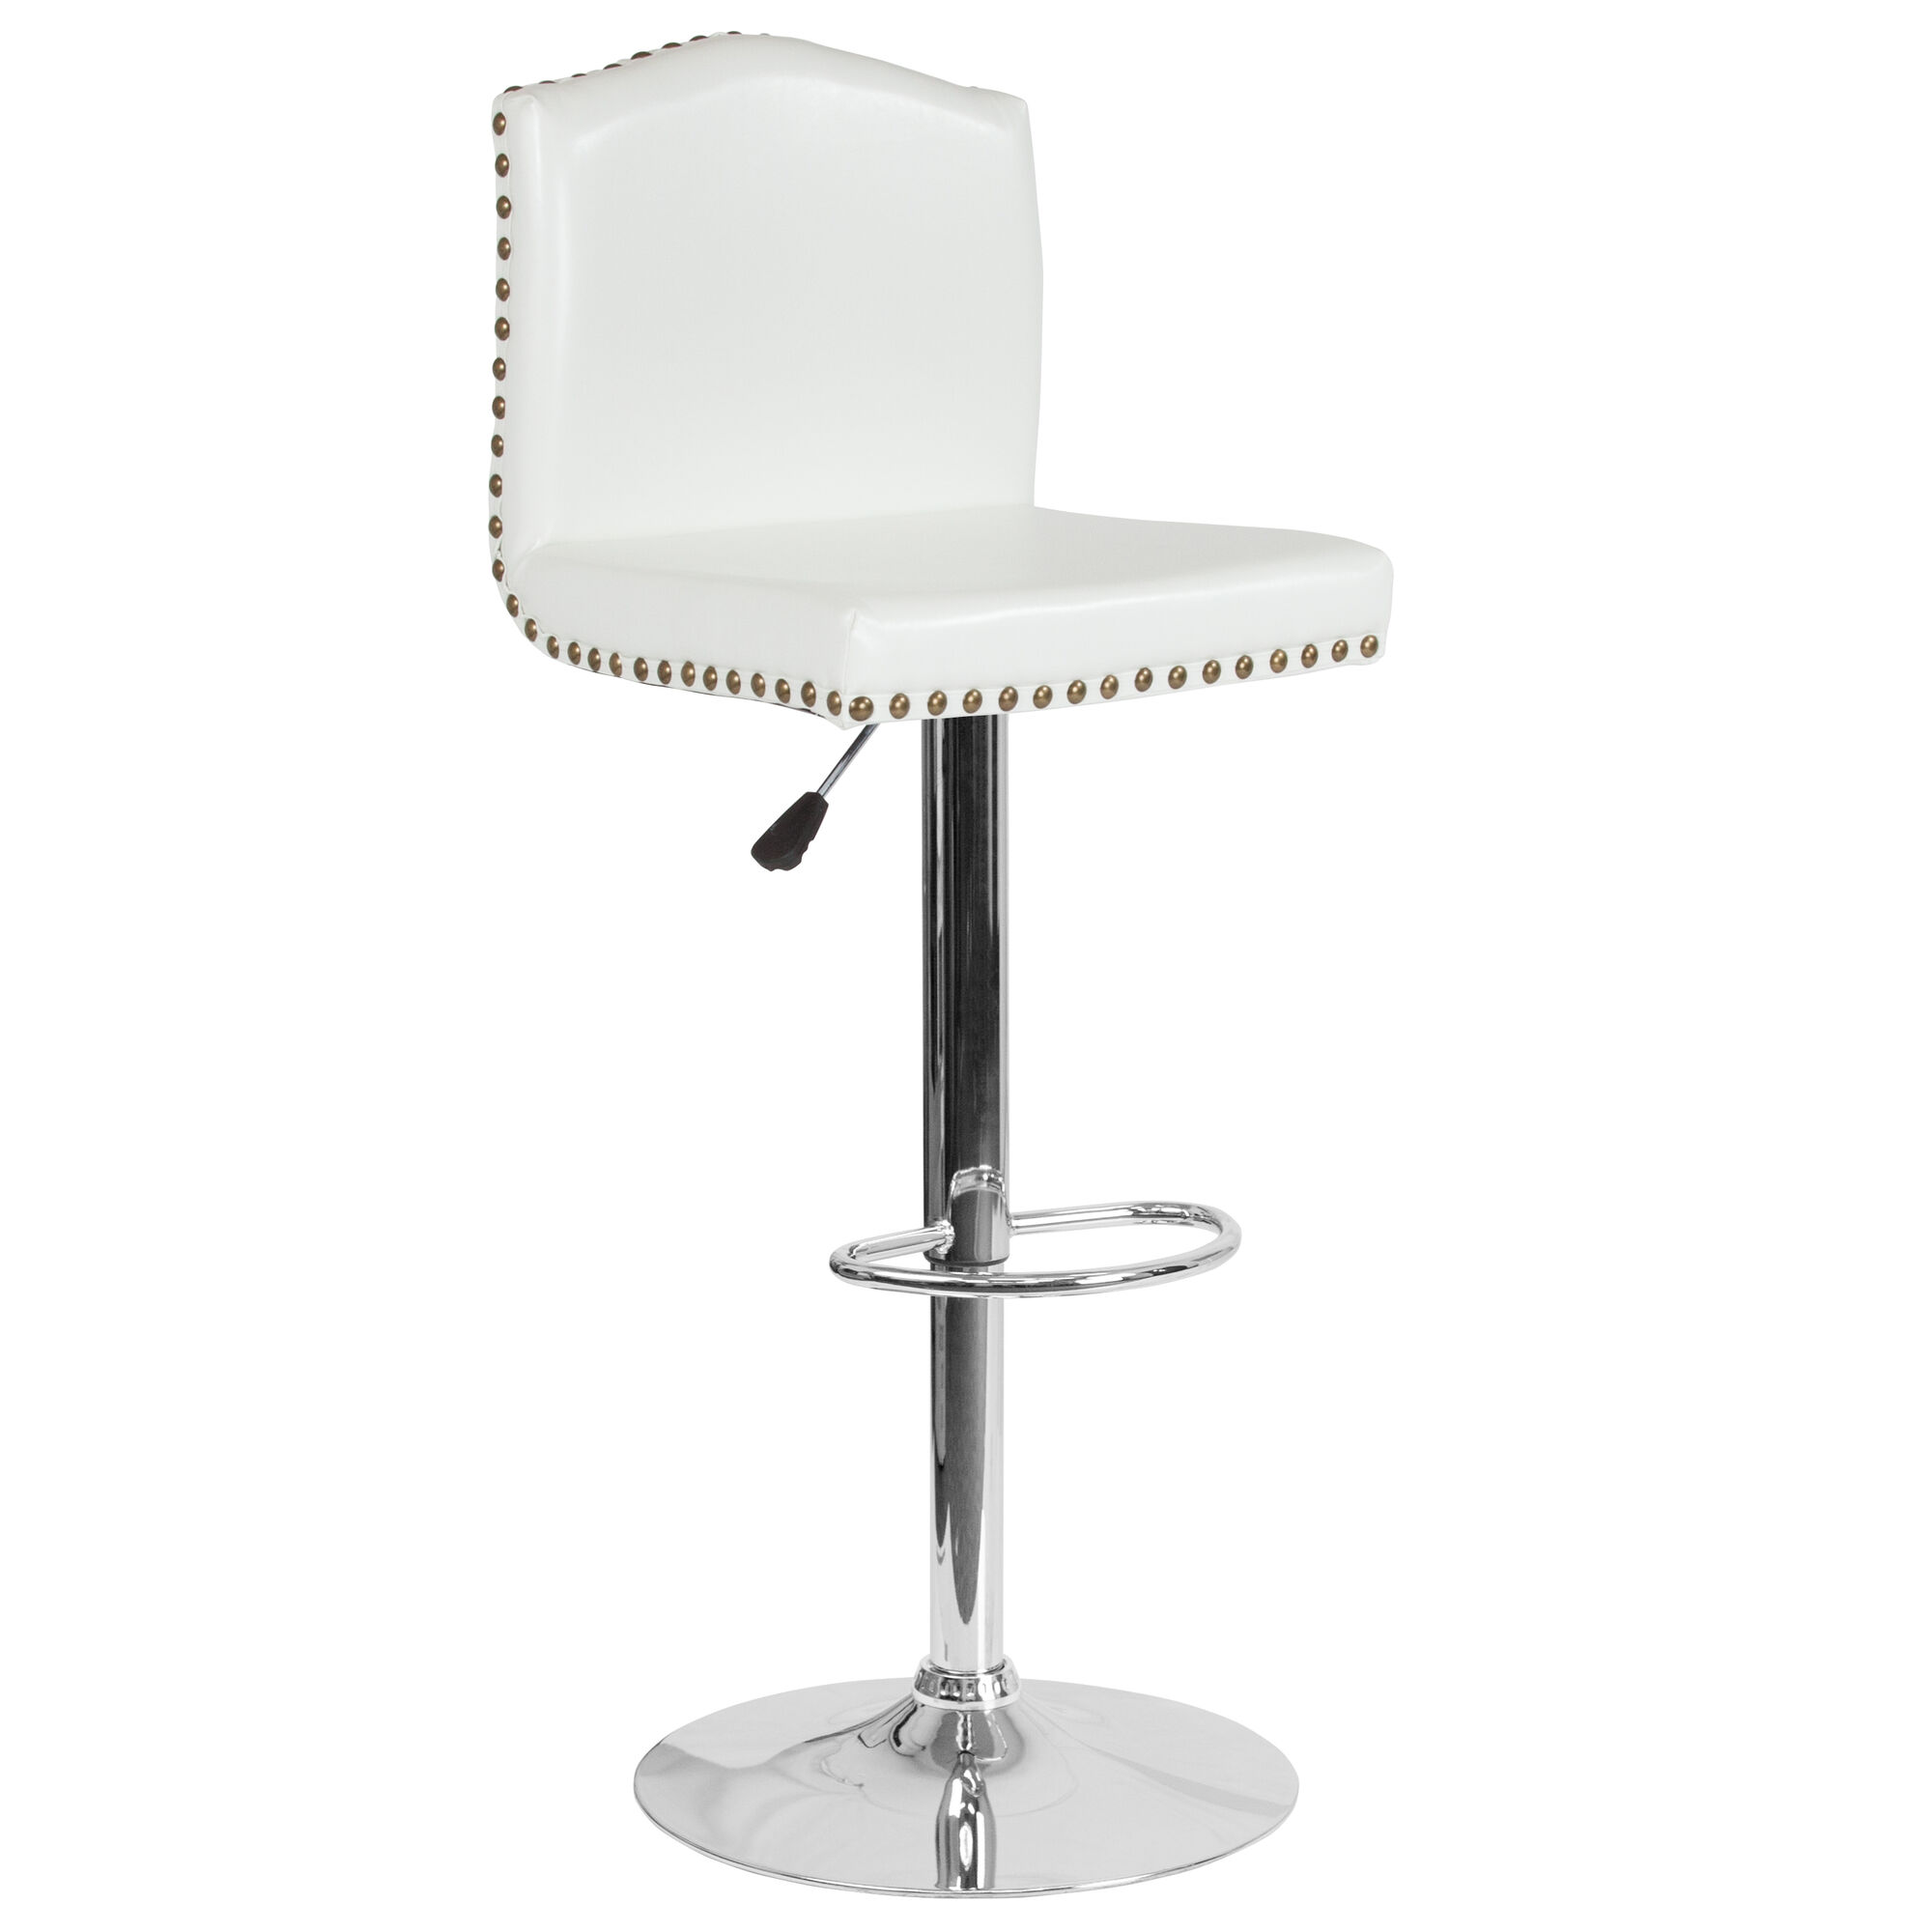 Amazing Bellagio Contemporary Adjustable Height Barstool With Accent Nail Trim In White Leather Onthecornerstone Fun Painted Chair Ideas Images Onthecornerstoneorg